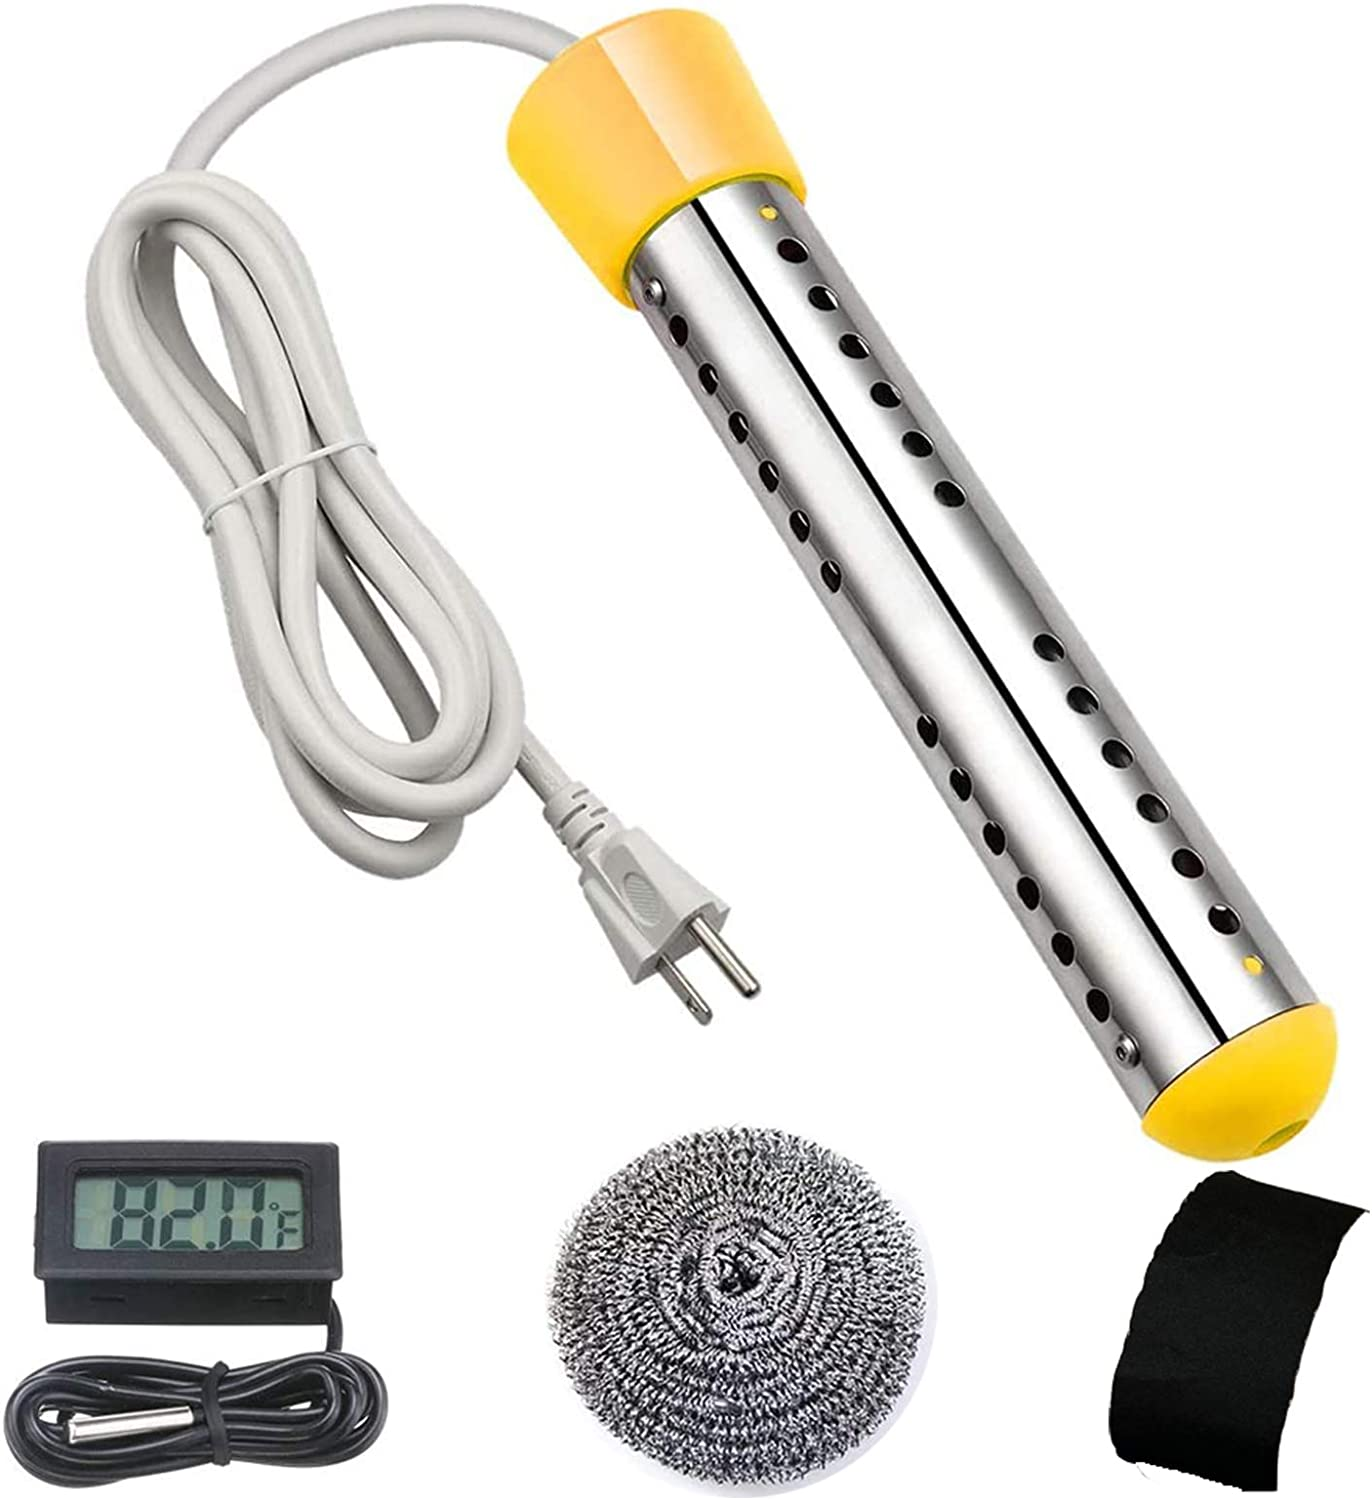 Immersion Water Heater, Electric Submersible Water Heater with Stainless Steel Guard Cover and Digital LCD Thermometer, Portable Bucket Heater To Heat 5 Gallons Of Water In Minutes(Yellow)